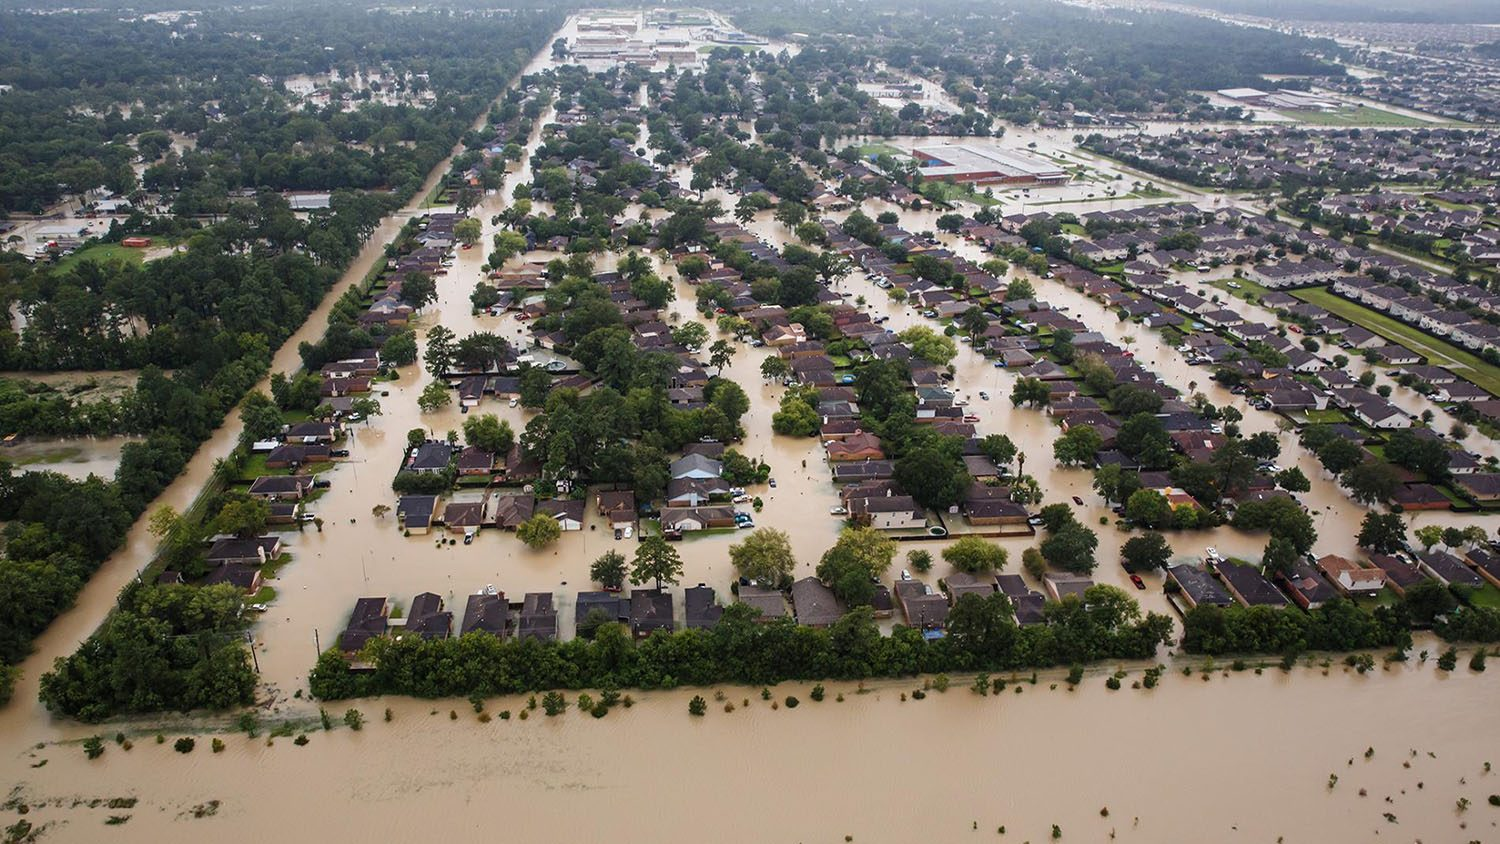 Aerial view of flooded residential area with